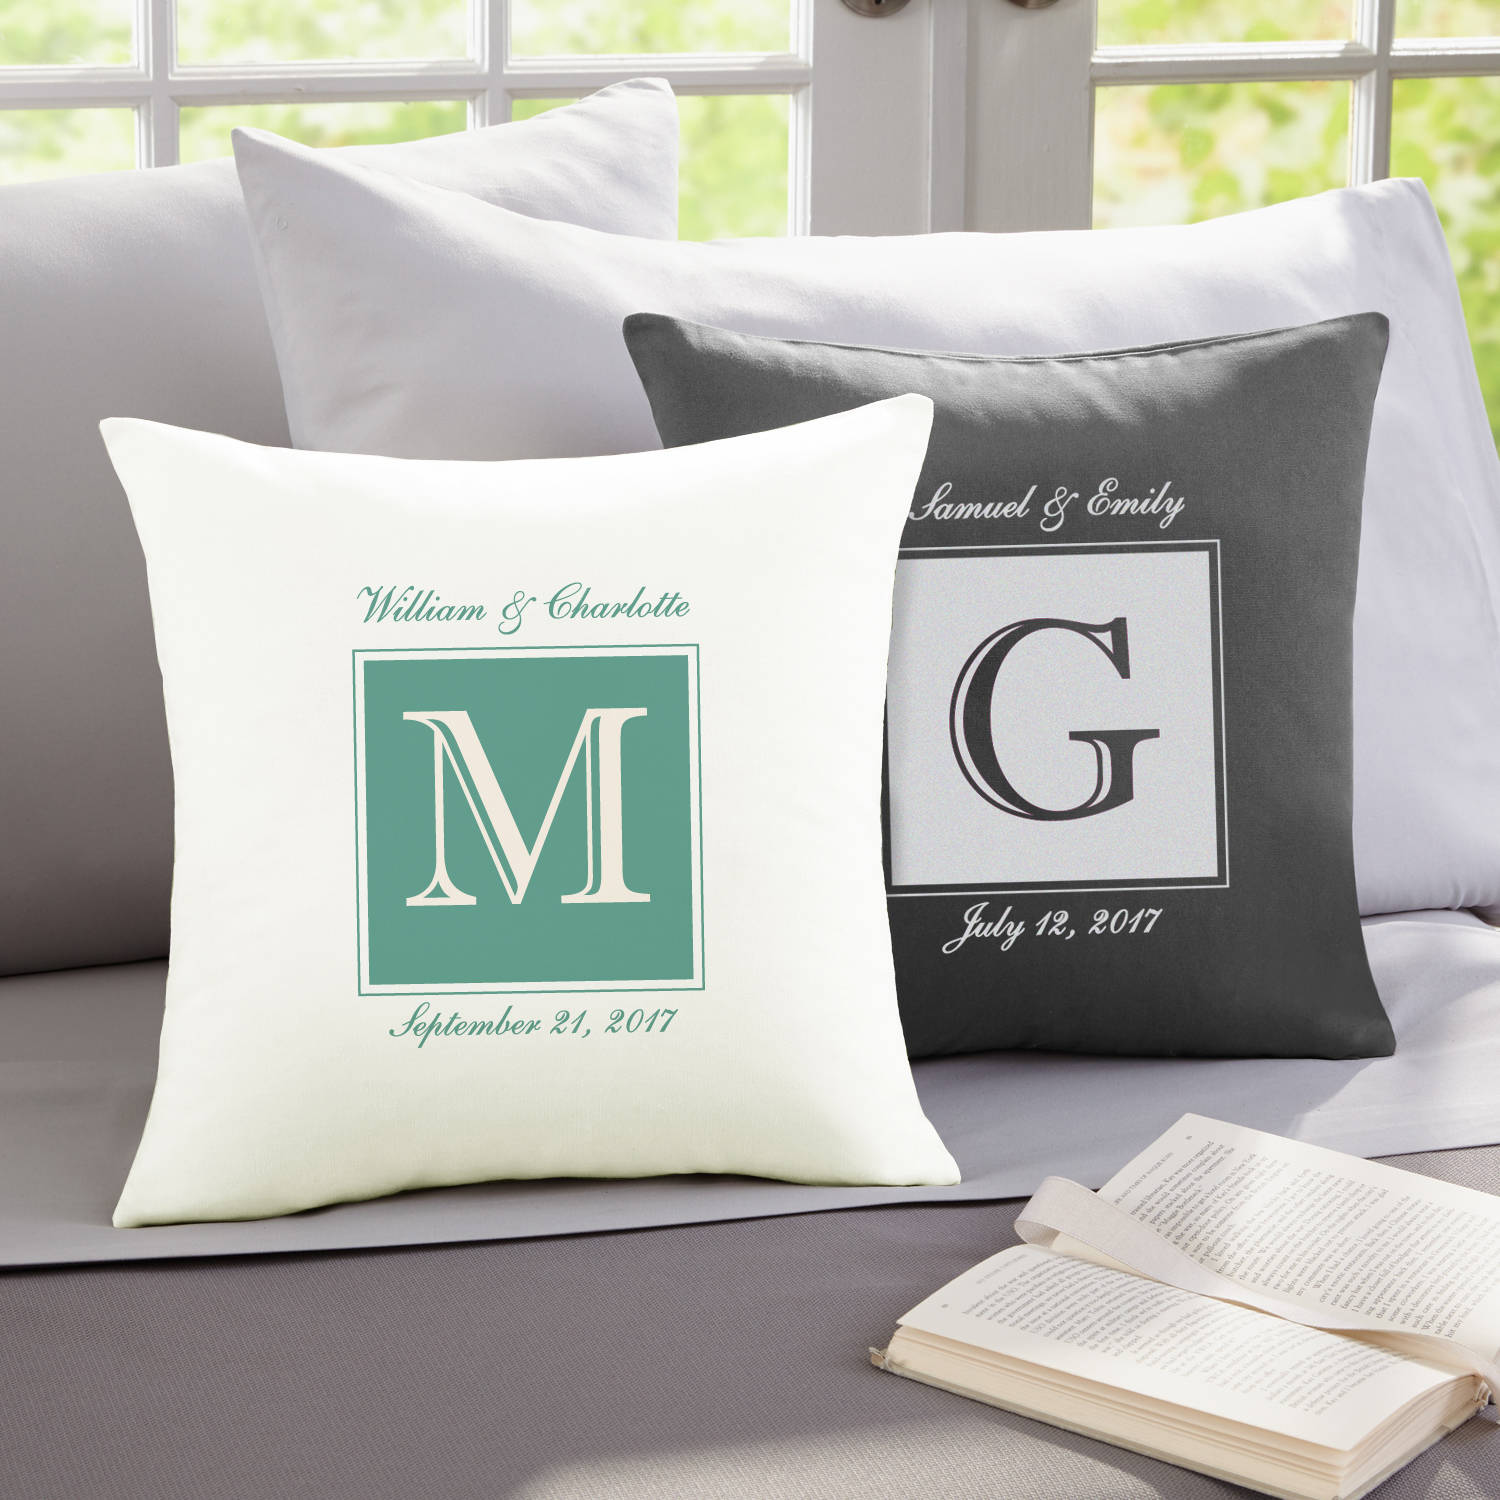 Personalized Initially Ours Throw Pillow, Available in Gray or Tan